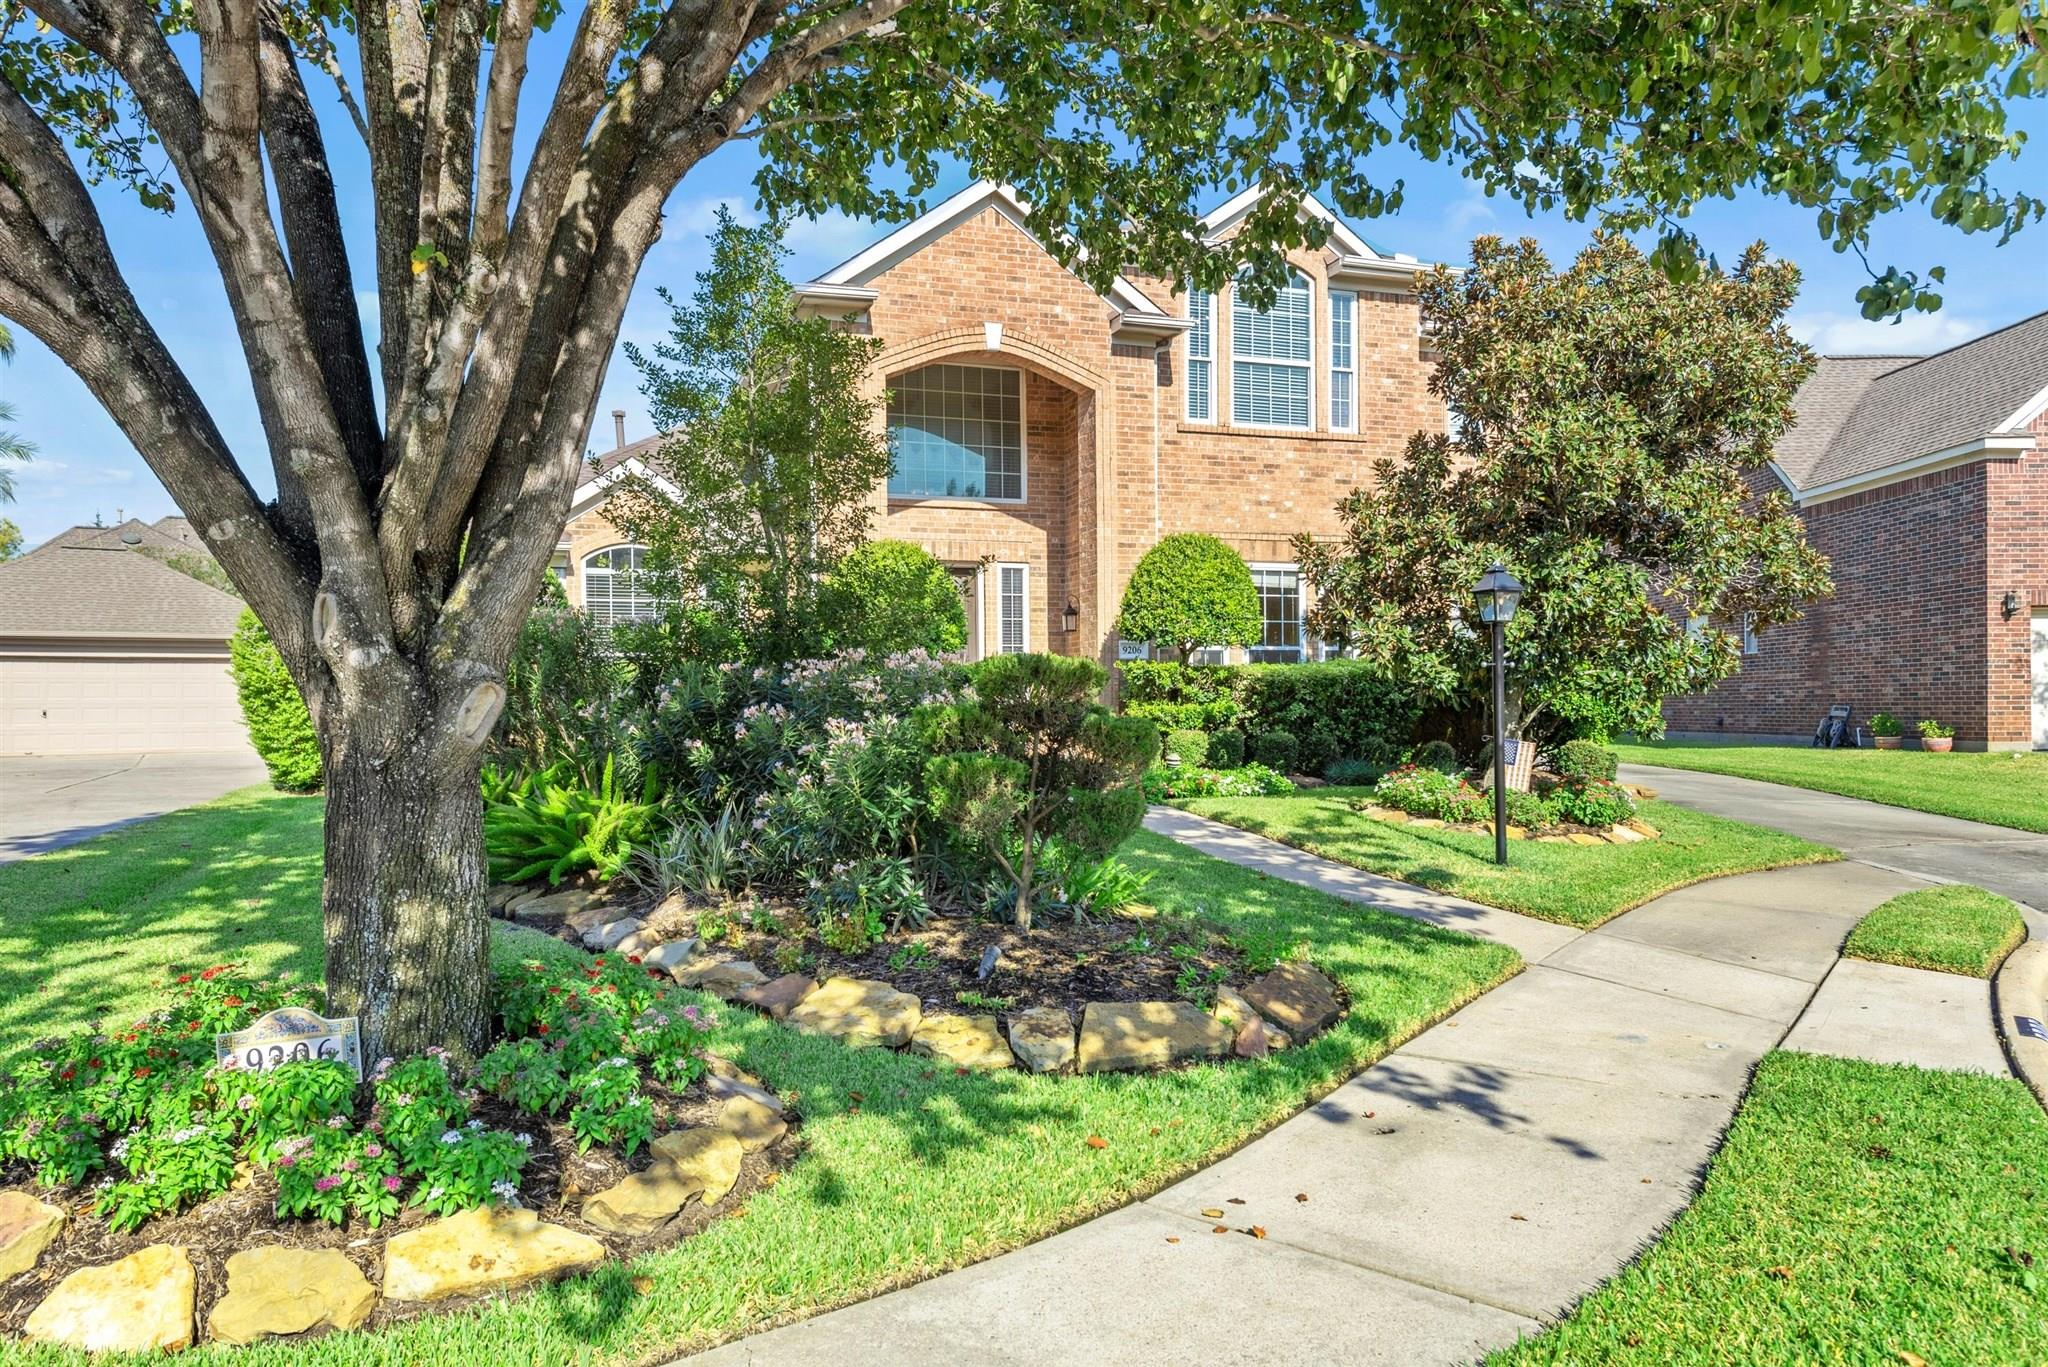 9206 Skipping Stone Lane Property Photo - Houston, TX real estate listing